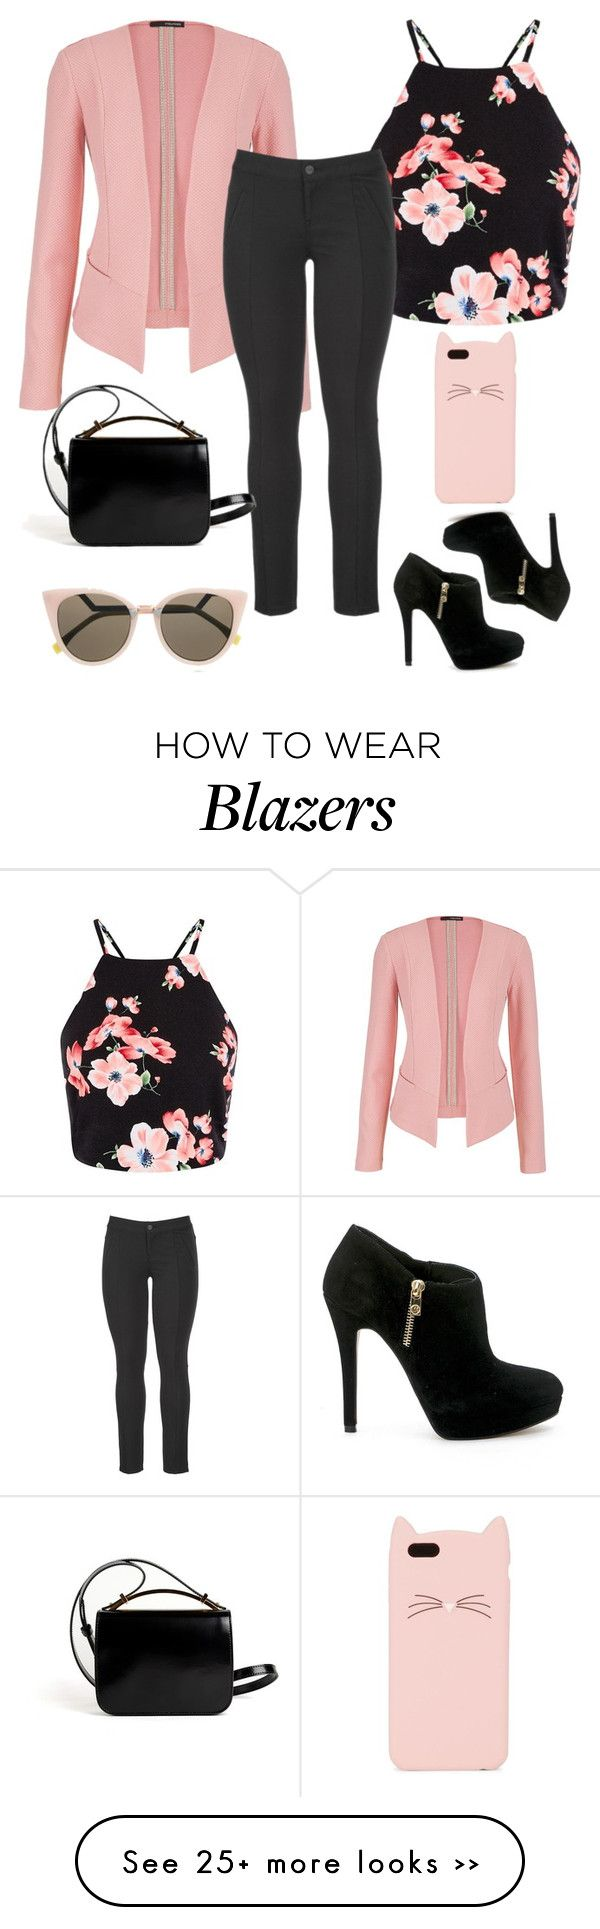 """""""Peachy Black"""" by chanlee-luv on Polyvore featuring maurices, MICHAEL Michael Kors, Kate Spade, Fendi and Givenchy"""